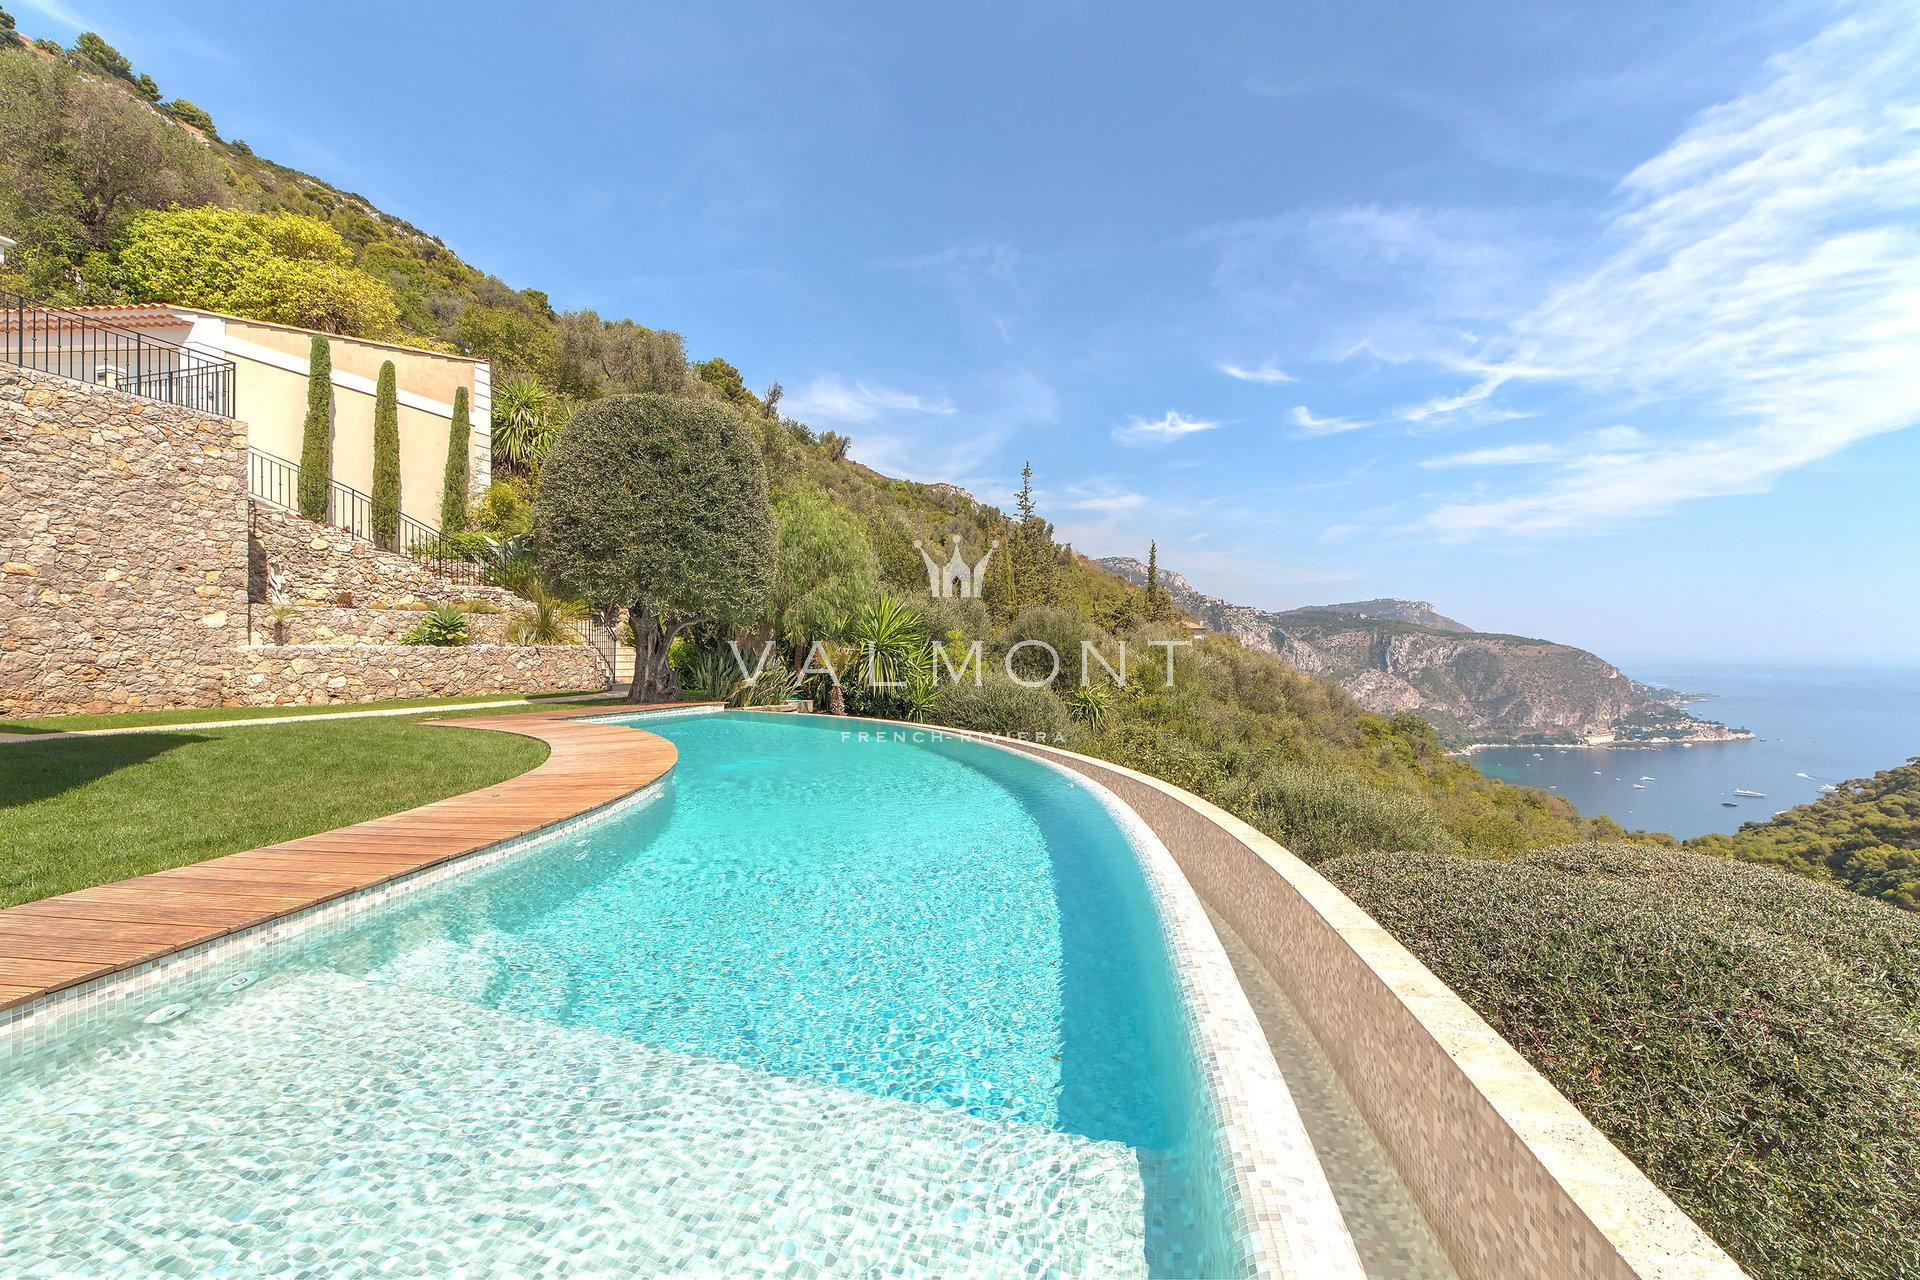 NEWLY BUILT VILLA IN PROXIMITY OF MONACO